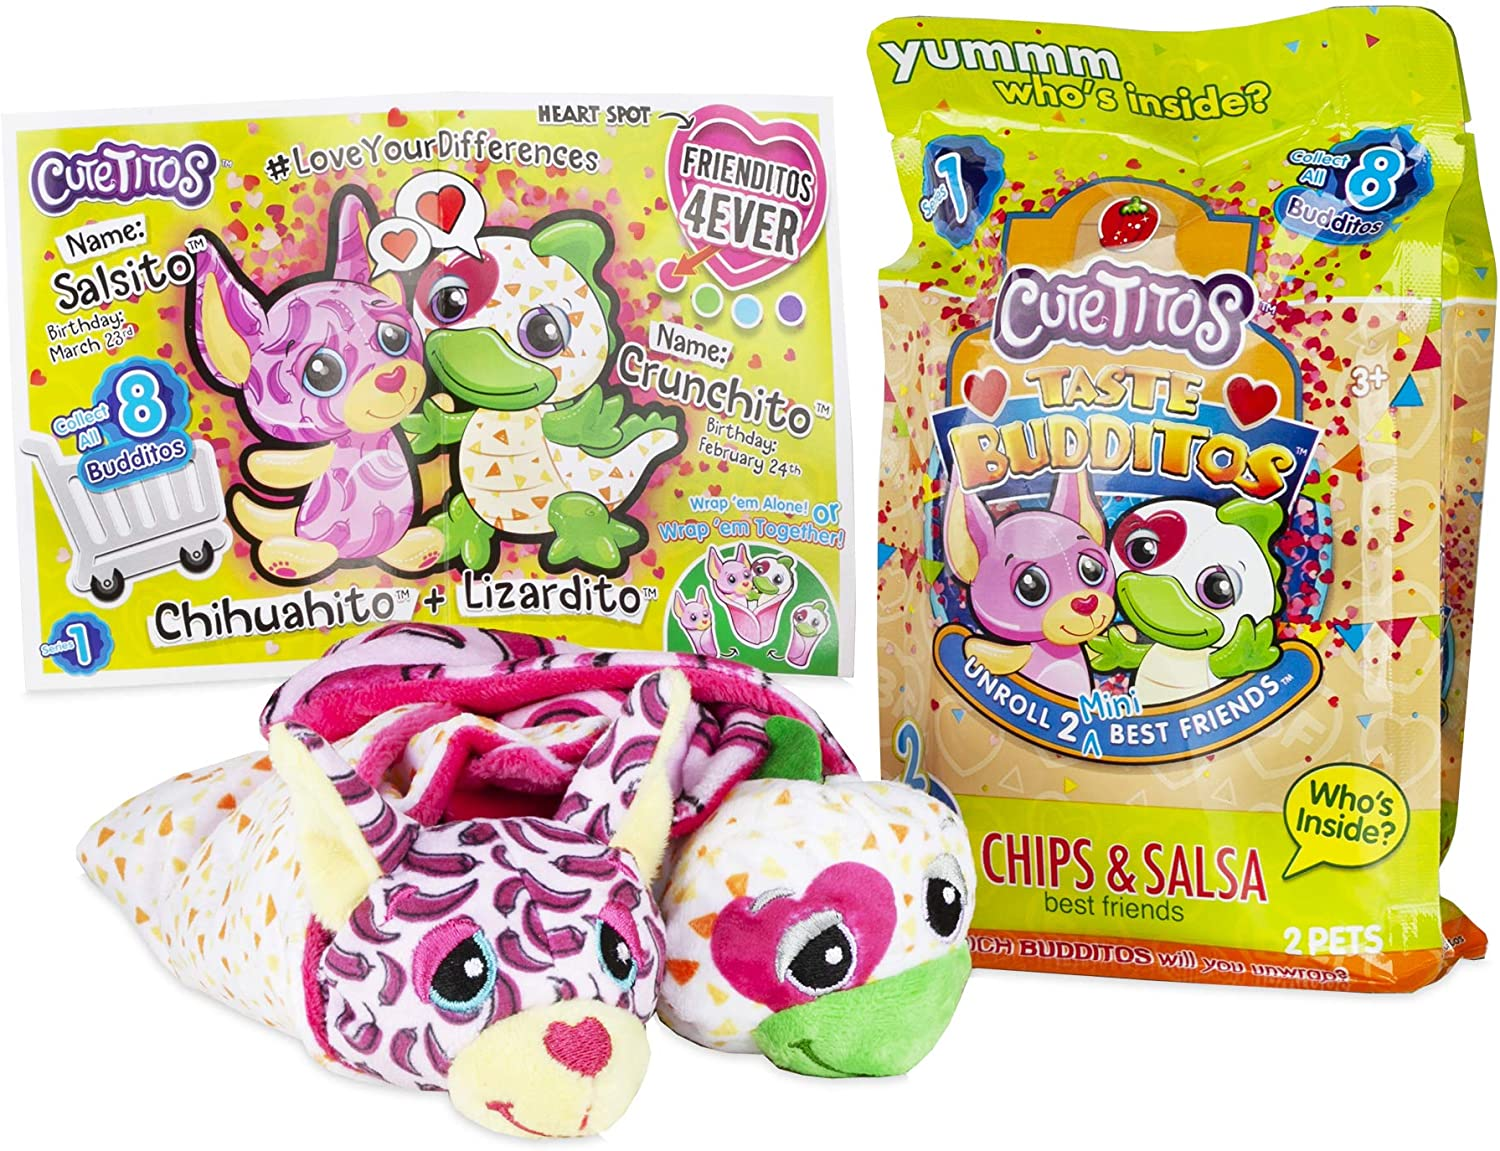 Basic Fun Cutetitos Taste Budditos Chips & Salsa - 2 Collectible Plush Mini Animals - Ages 3+ - Series 1 - Great Gift for Girls and Boys